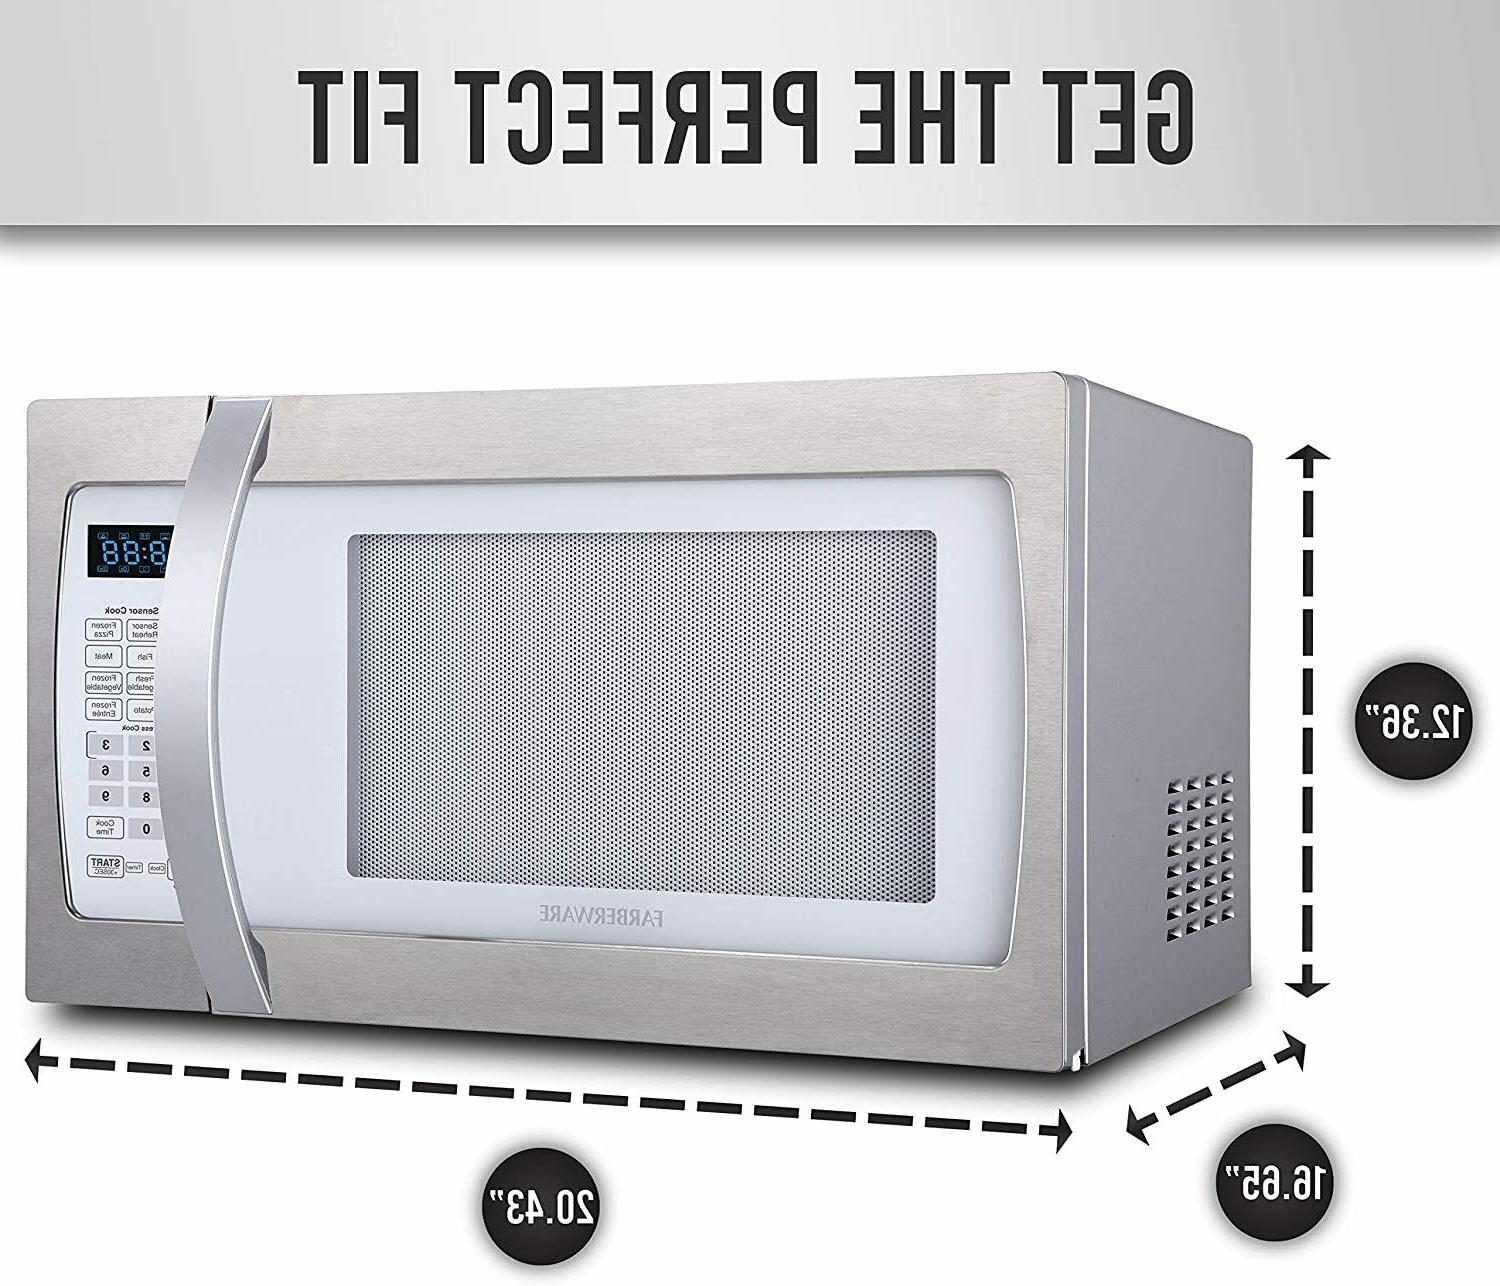 Farberware Professional FMO13AHTPLE 1.3 Cu. Ft. Microwave Oven